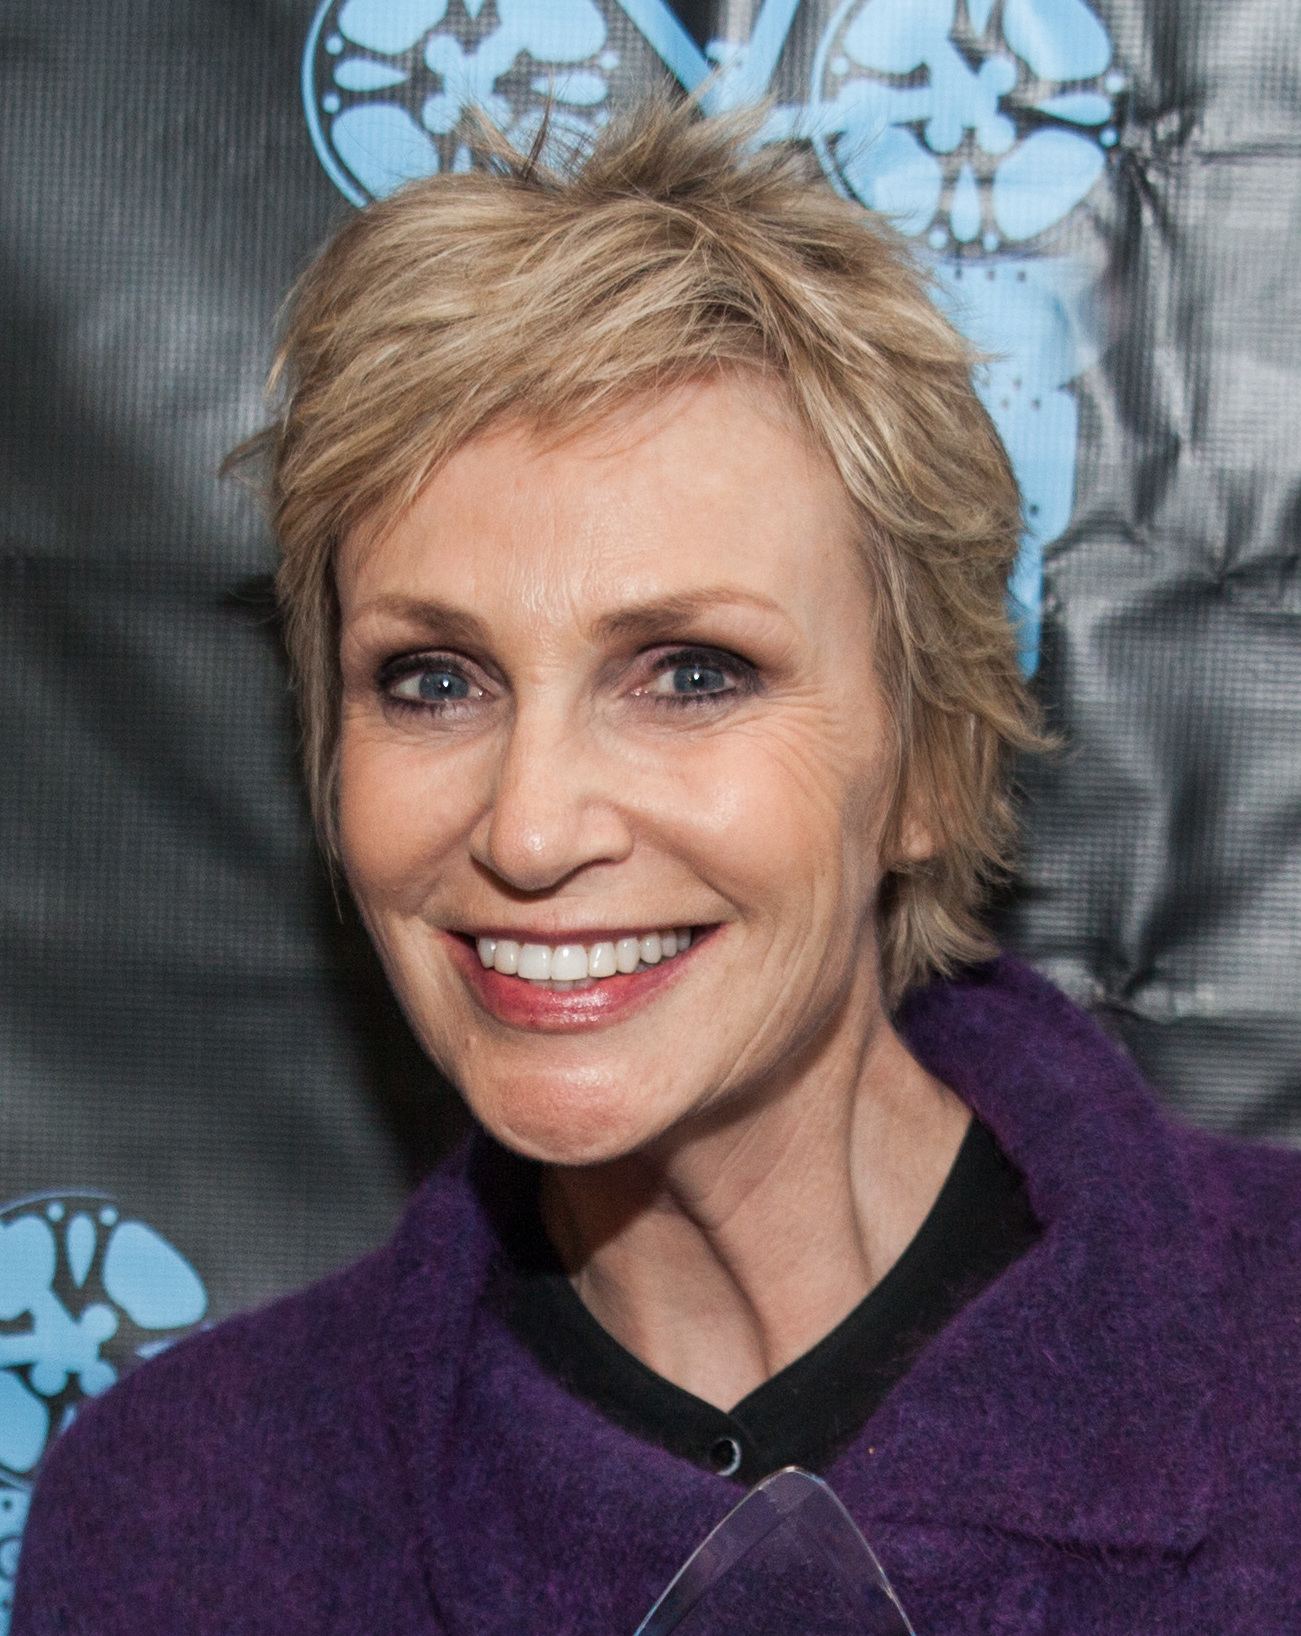 Jane Lynch - Wikipedia